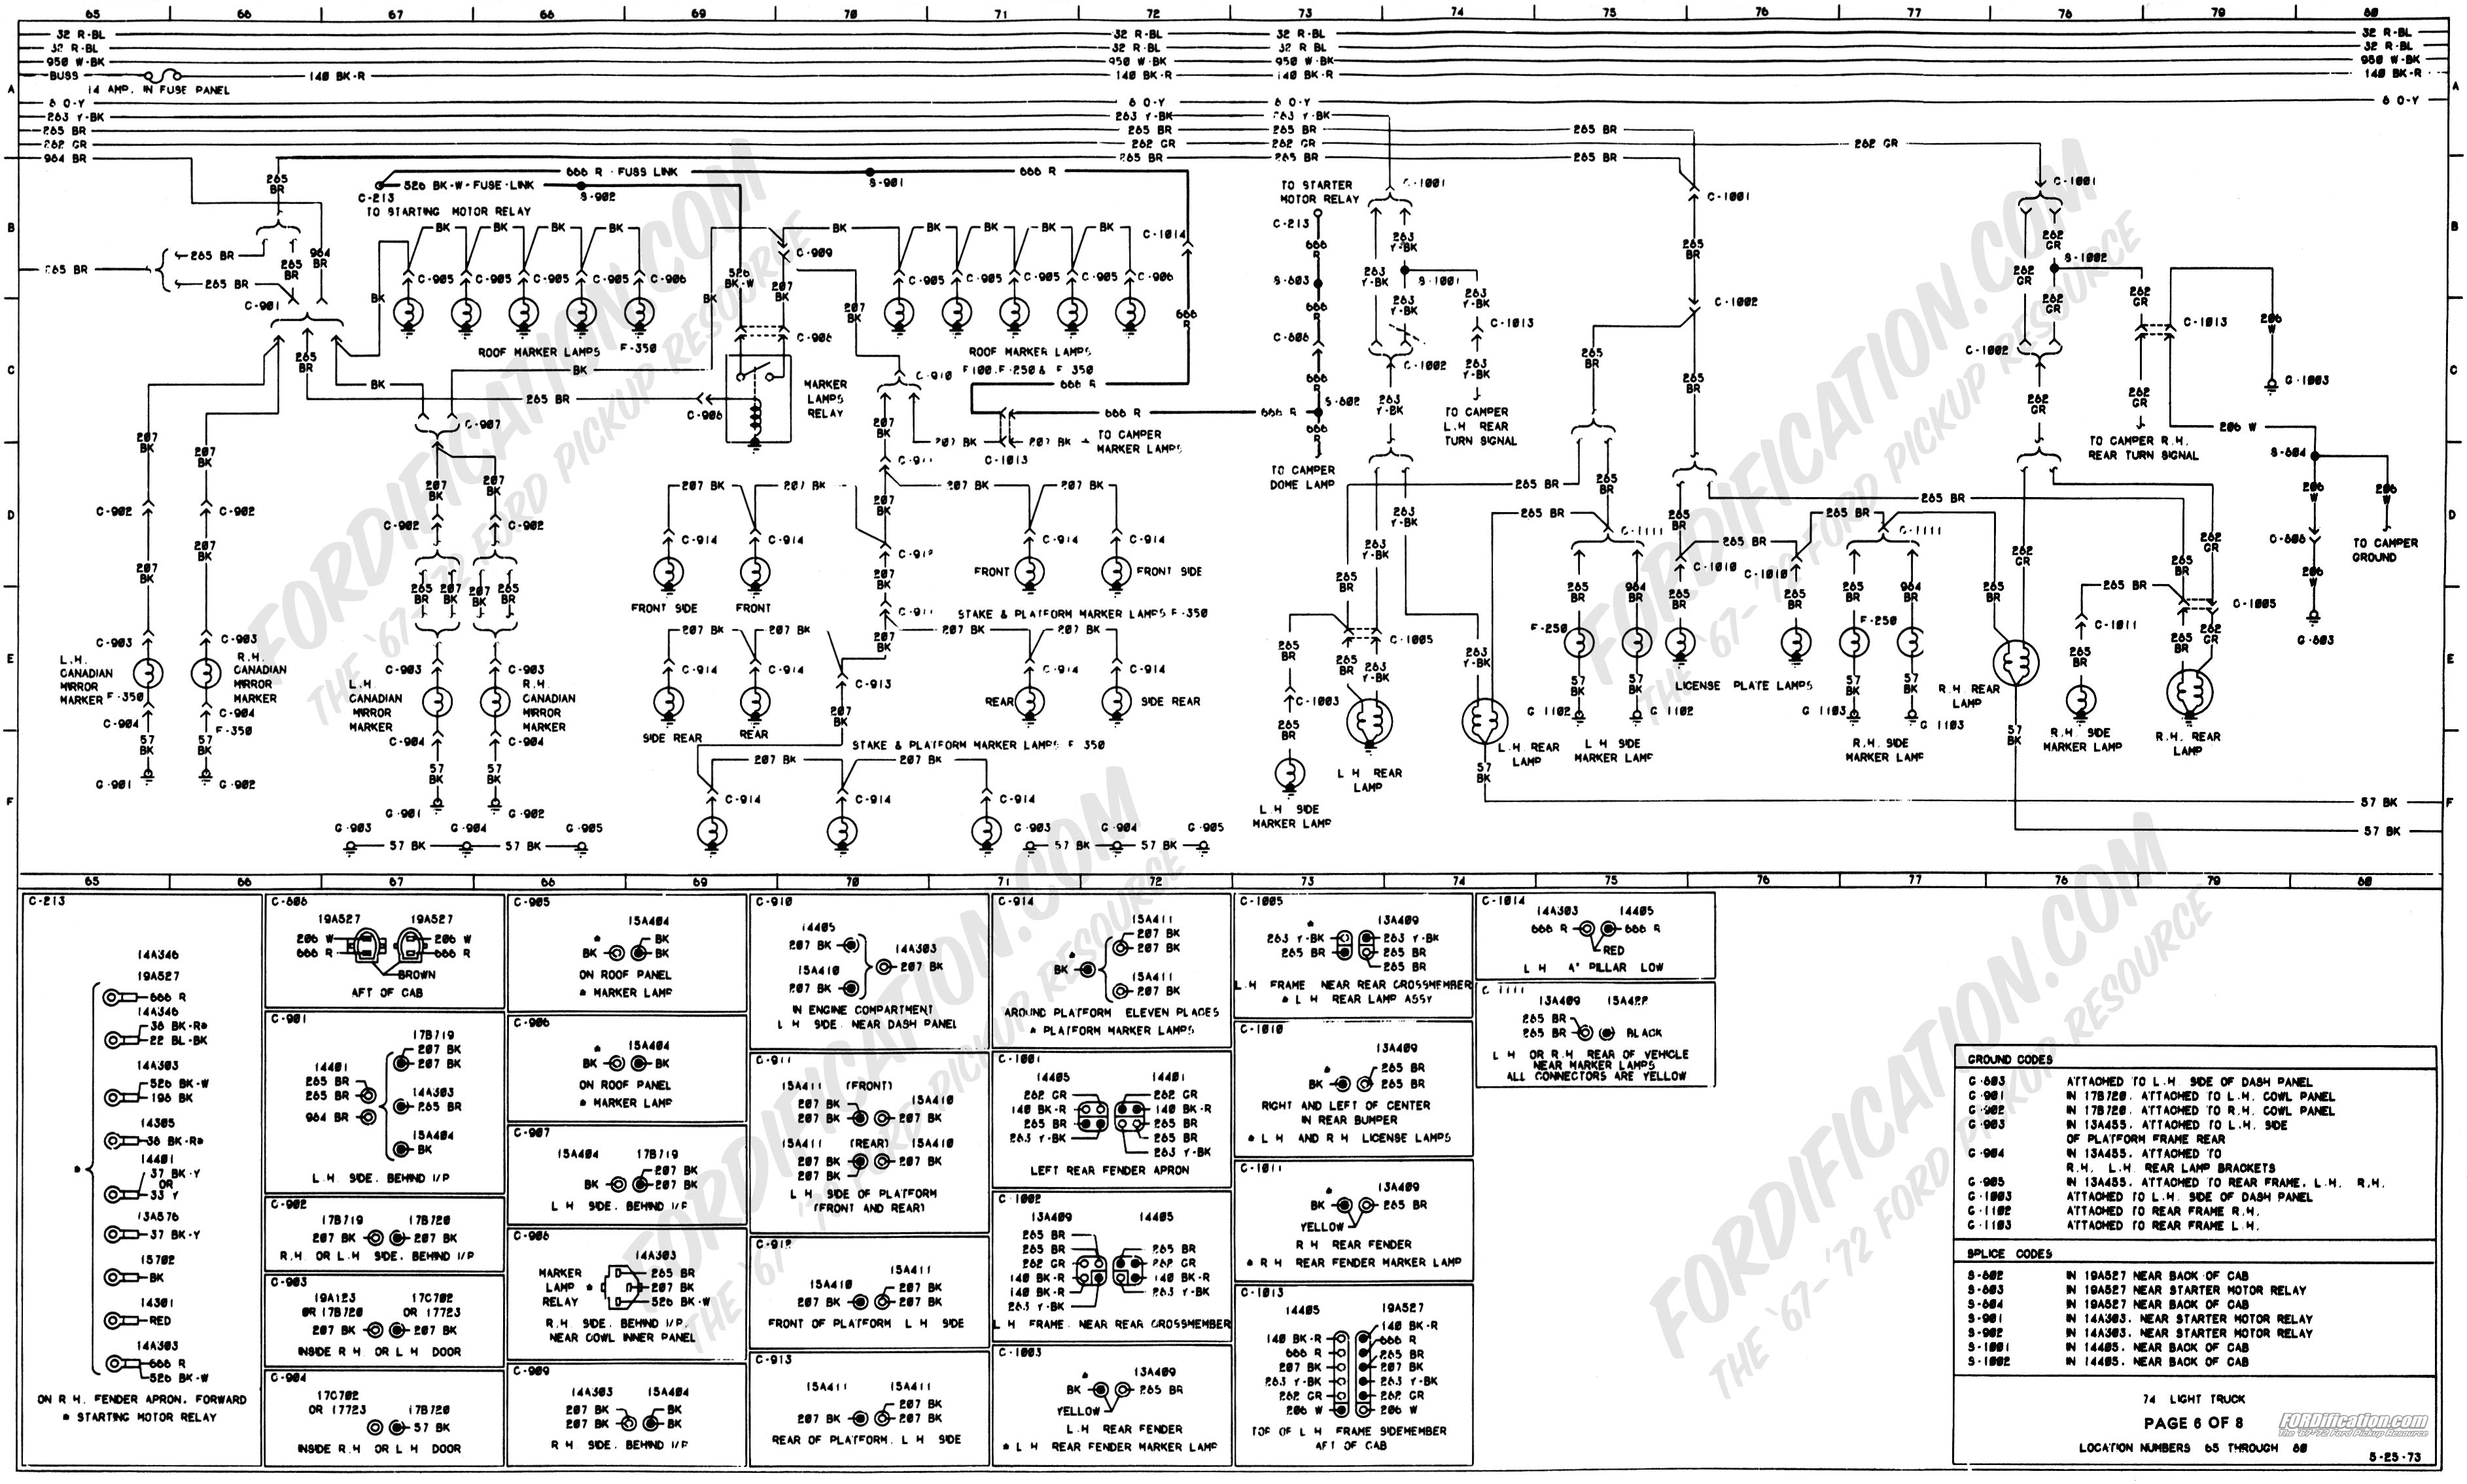 Ford F 150 Wiring Harness Diagram 1979 - Wiring Diagrams Click - 1999 Ford F250 Trailer Wiring Diagram